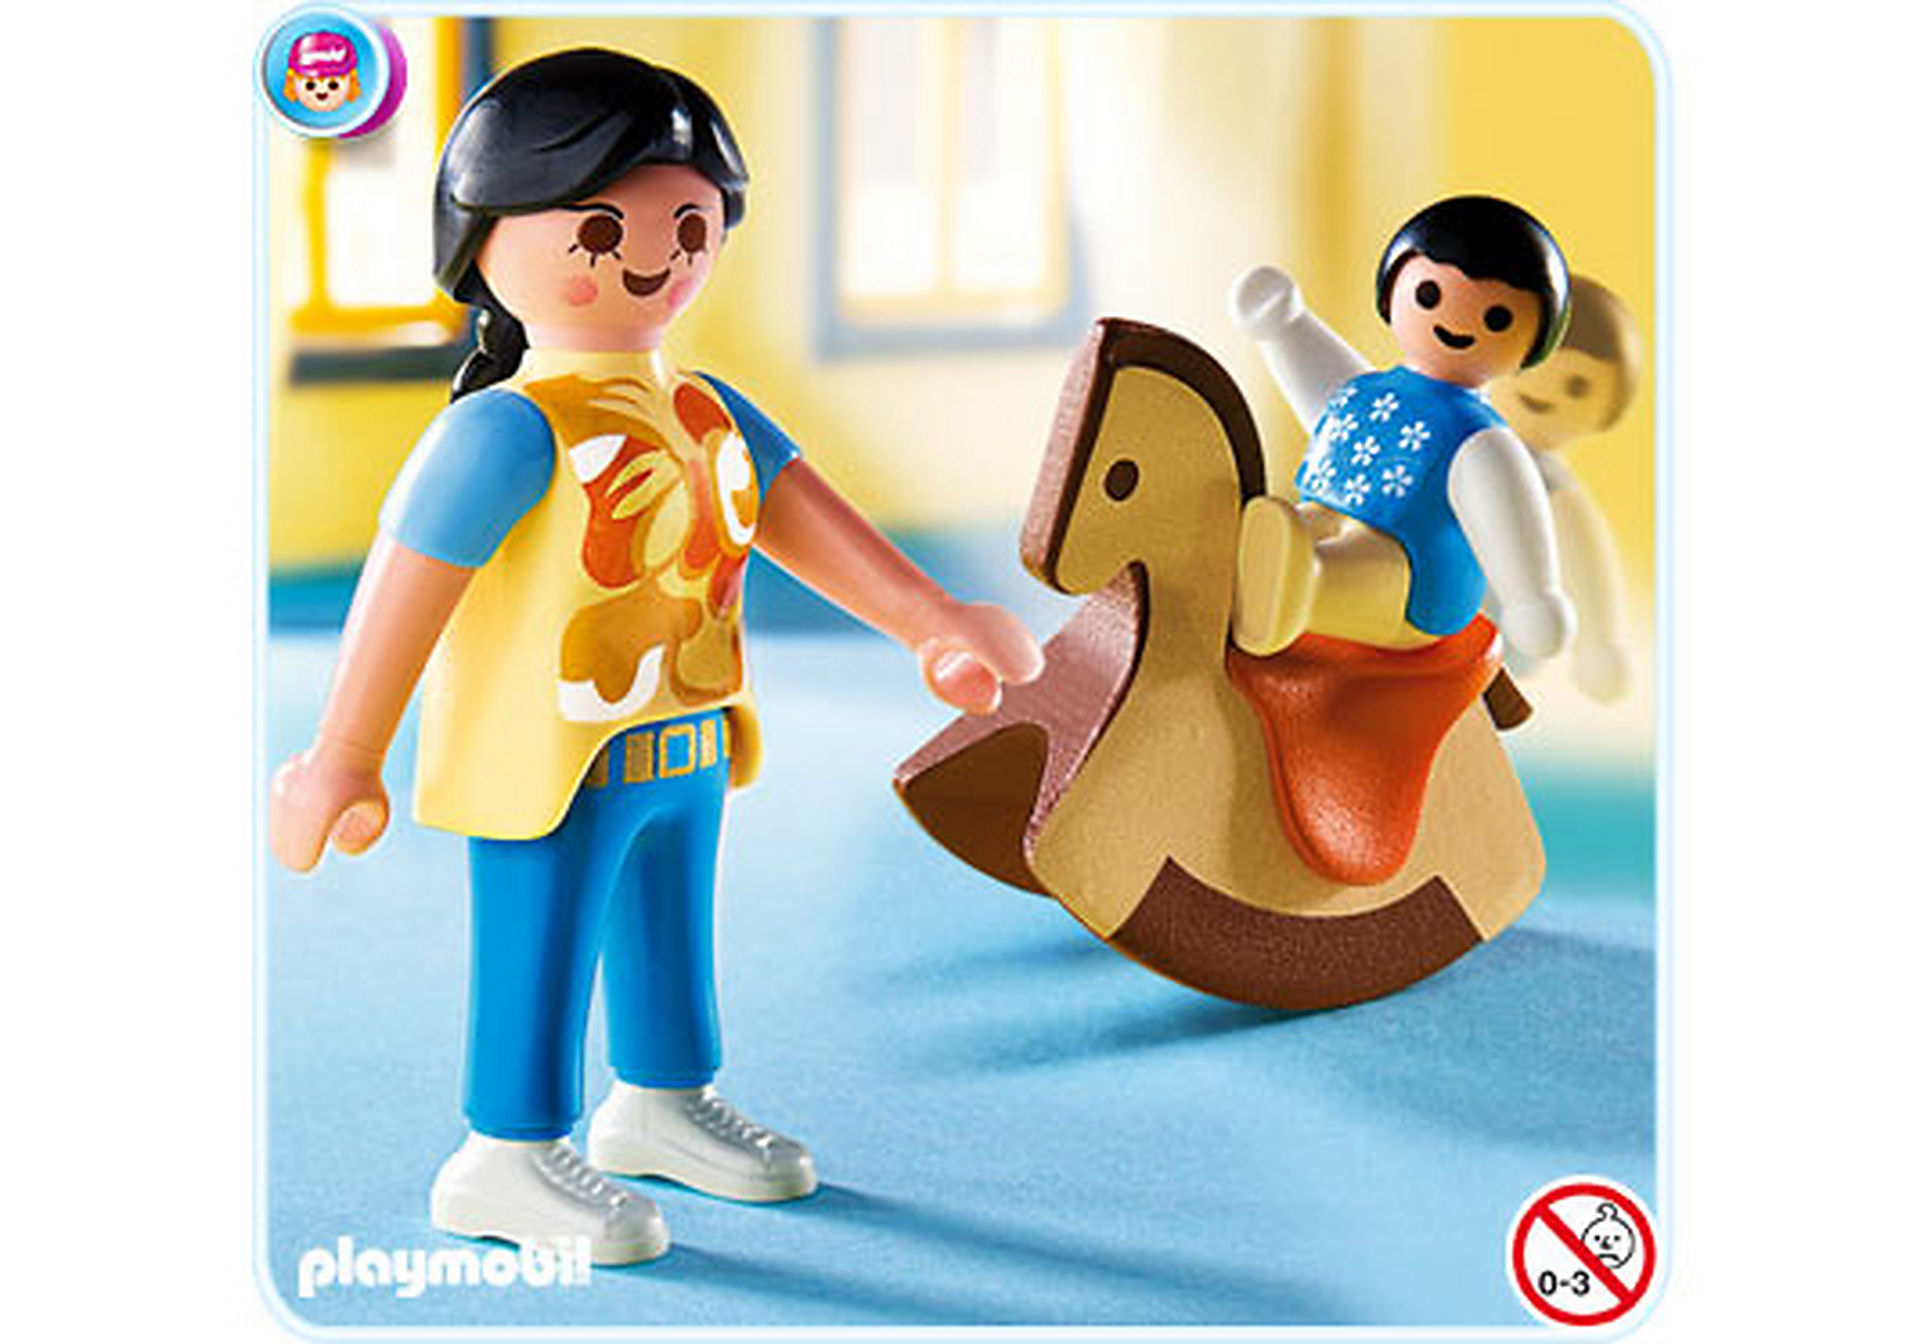 http://media.playmobil.com/i/playmobil/4744-A_product_detail/Baby auf Schaukelpferd mit Mama